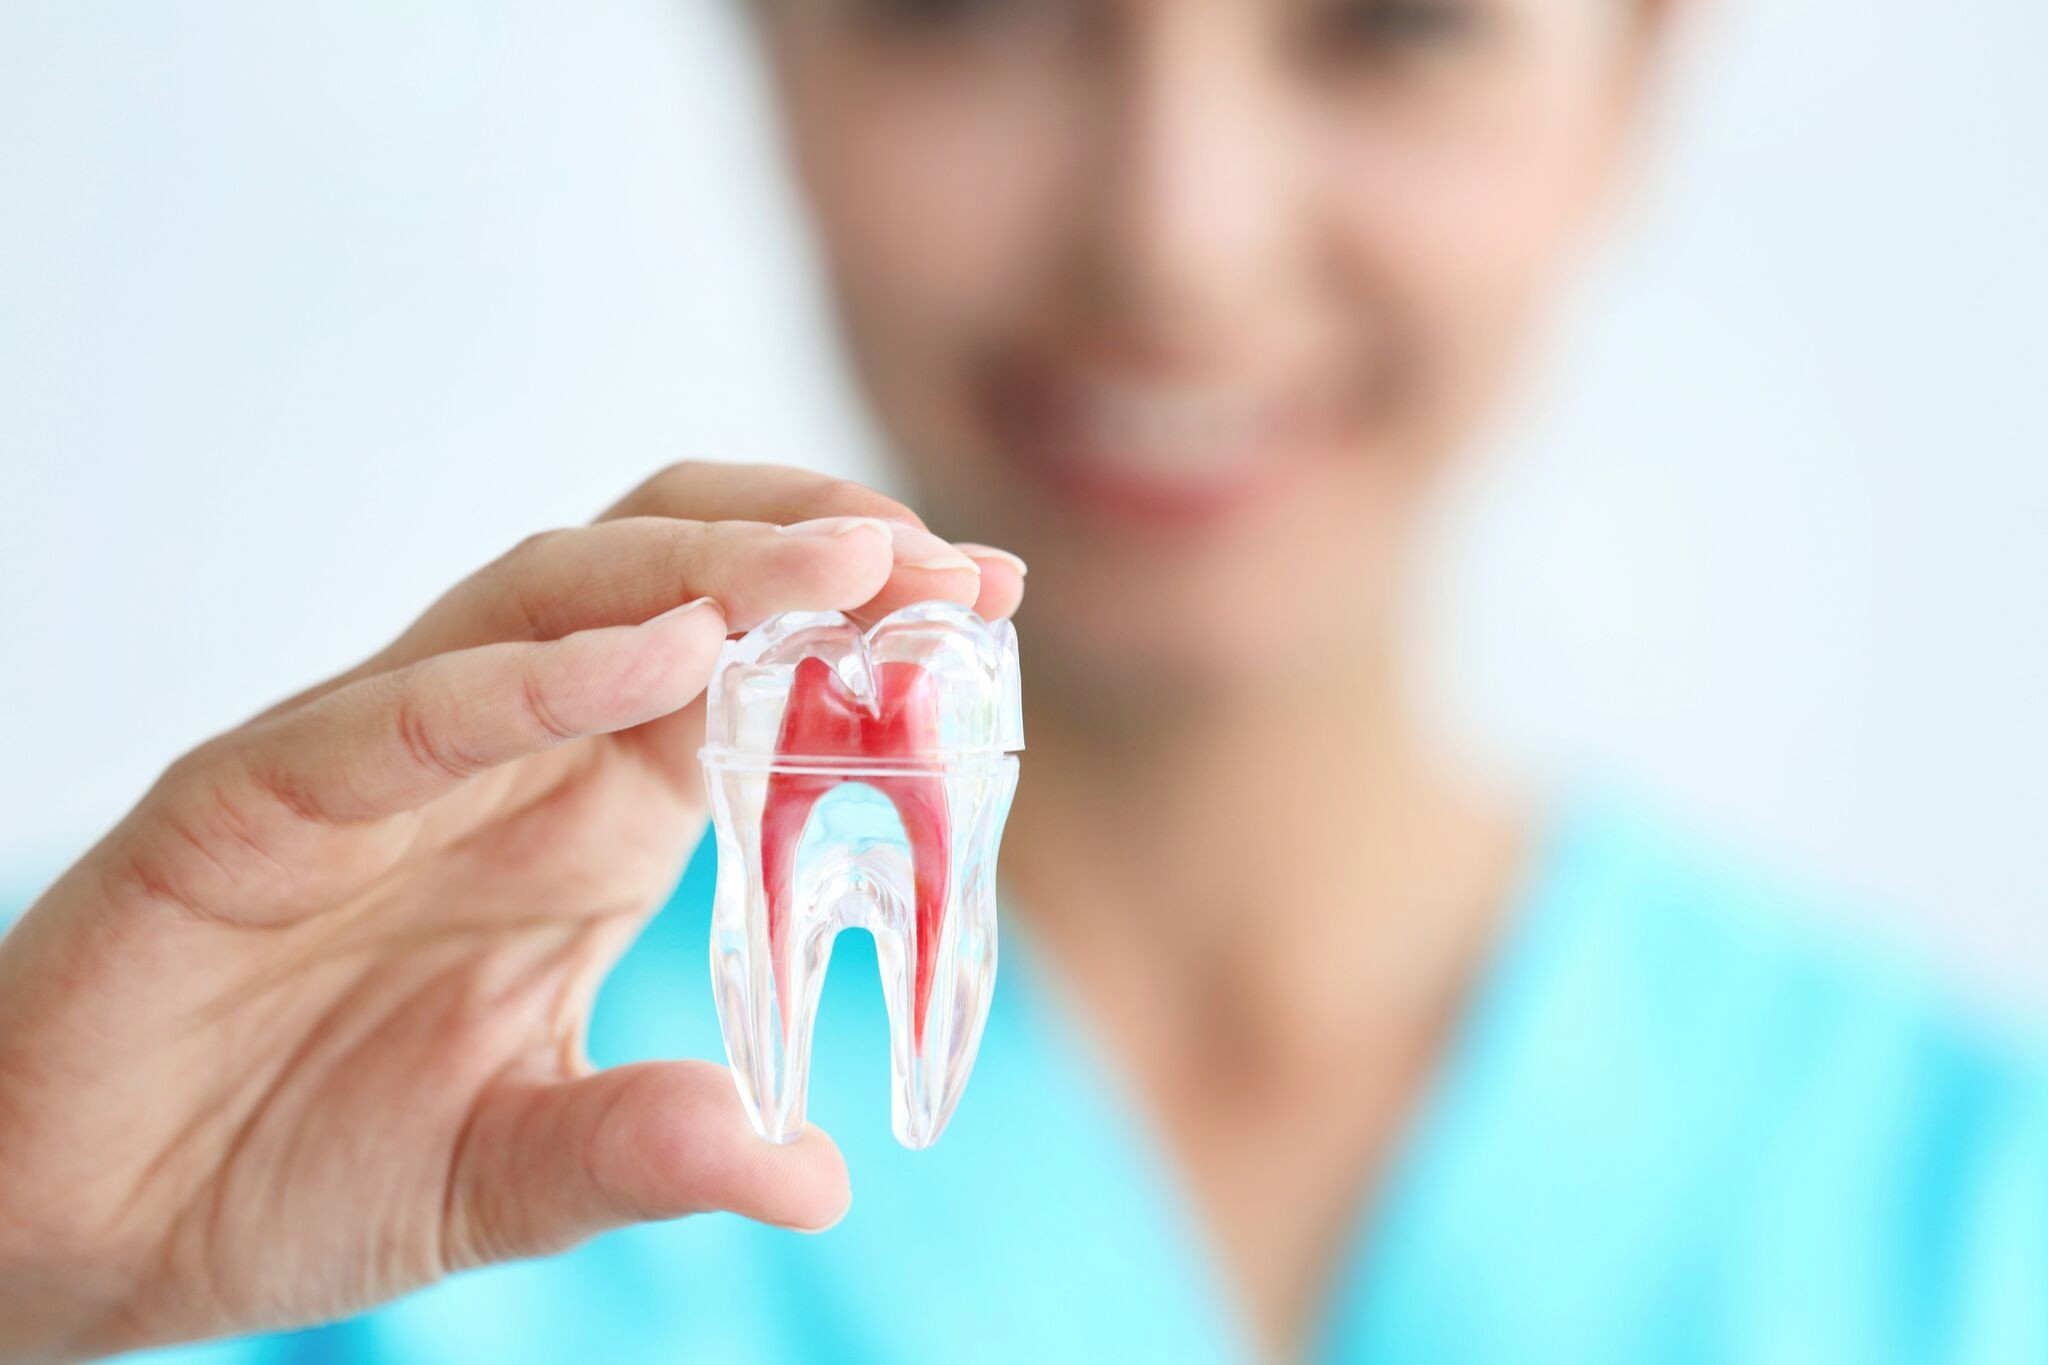 The Services and Functions Work Under Root Canal Work in Auckland CBD